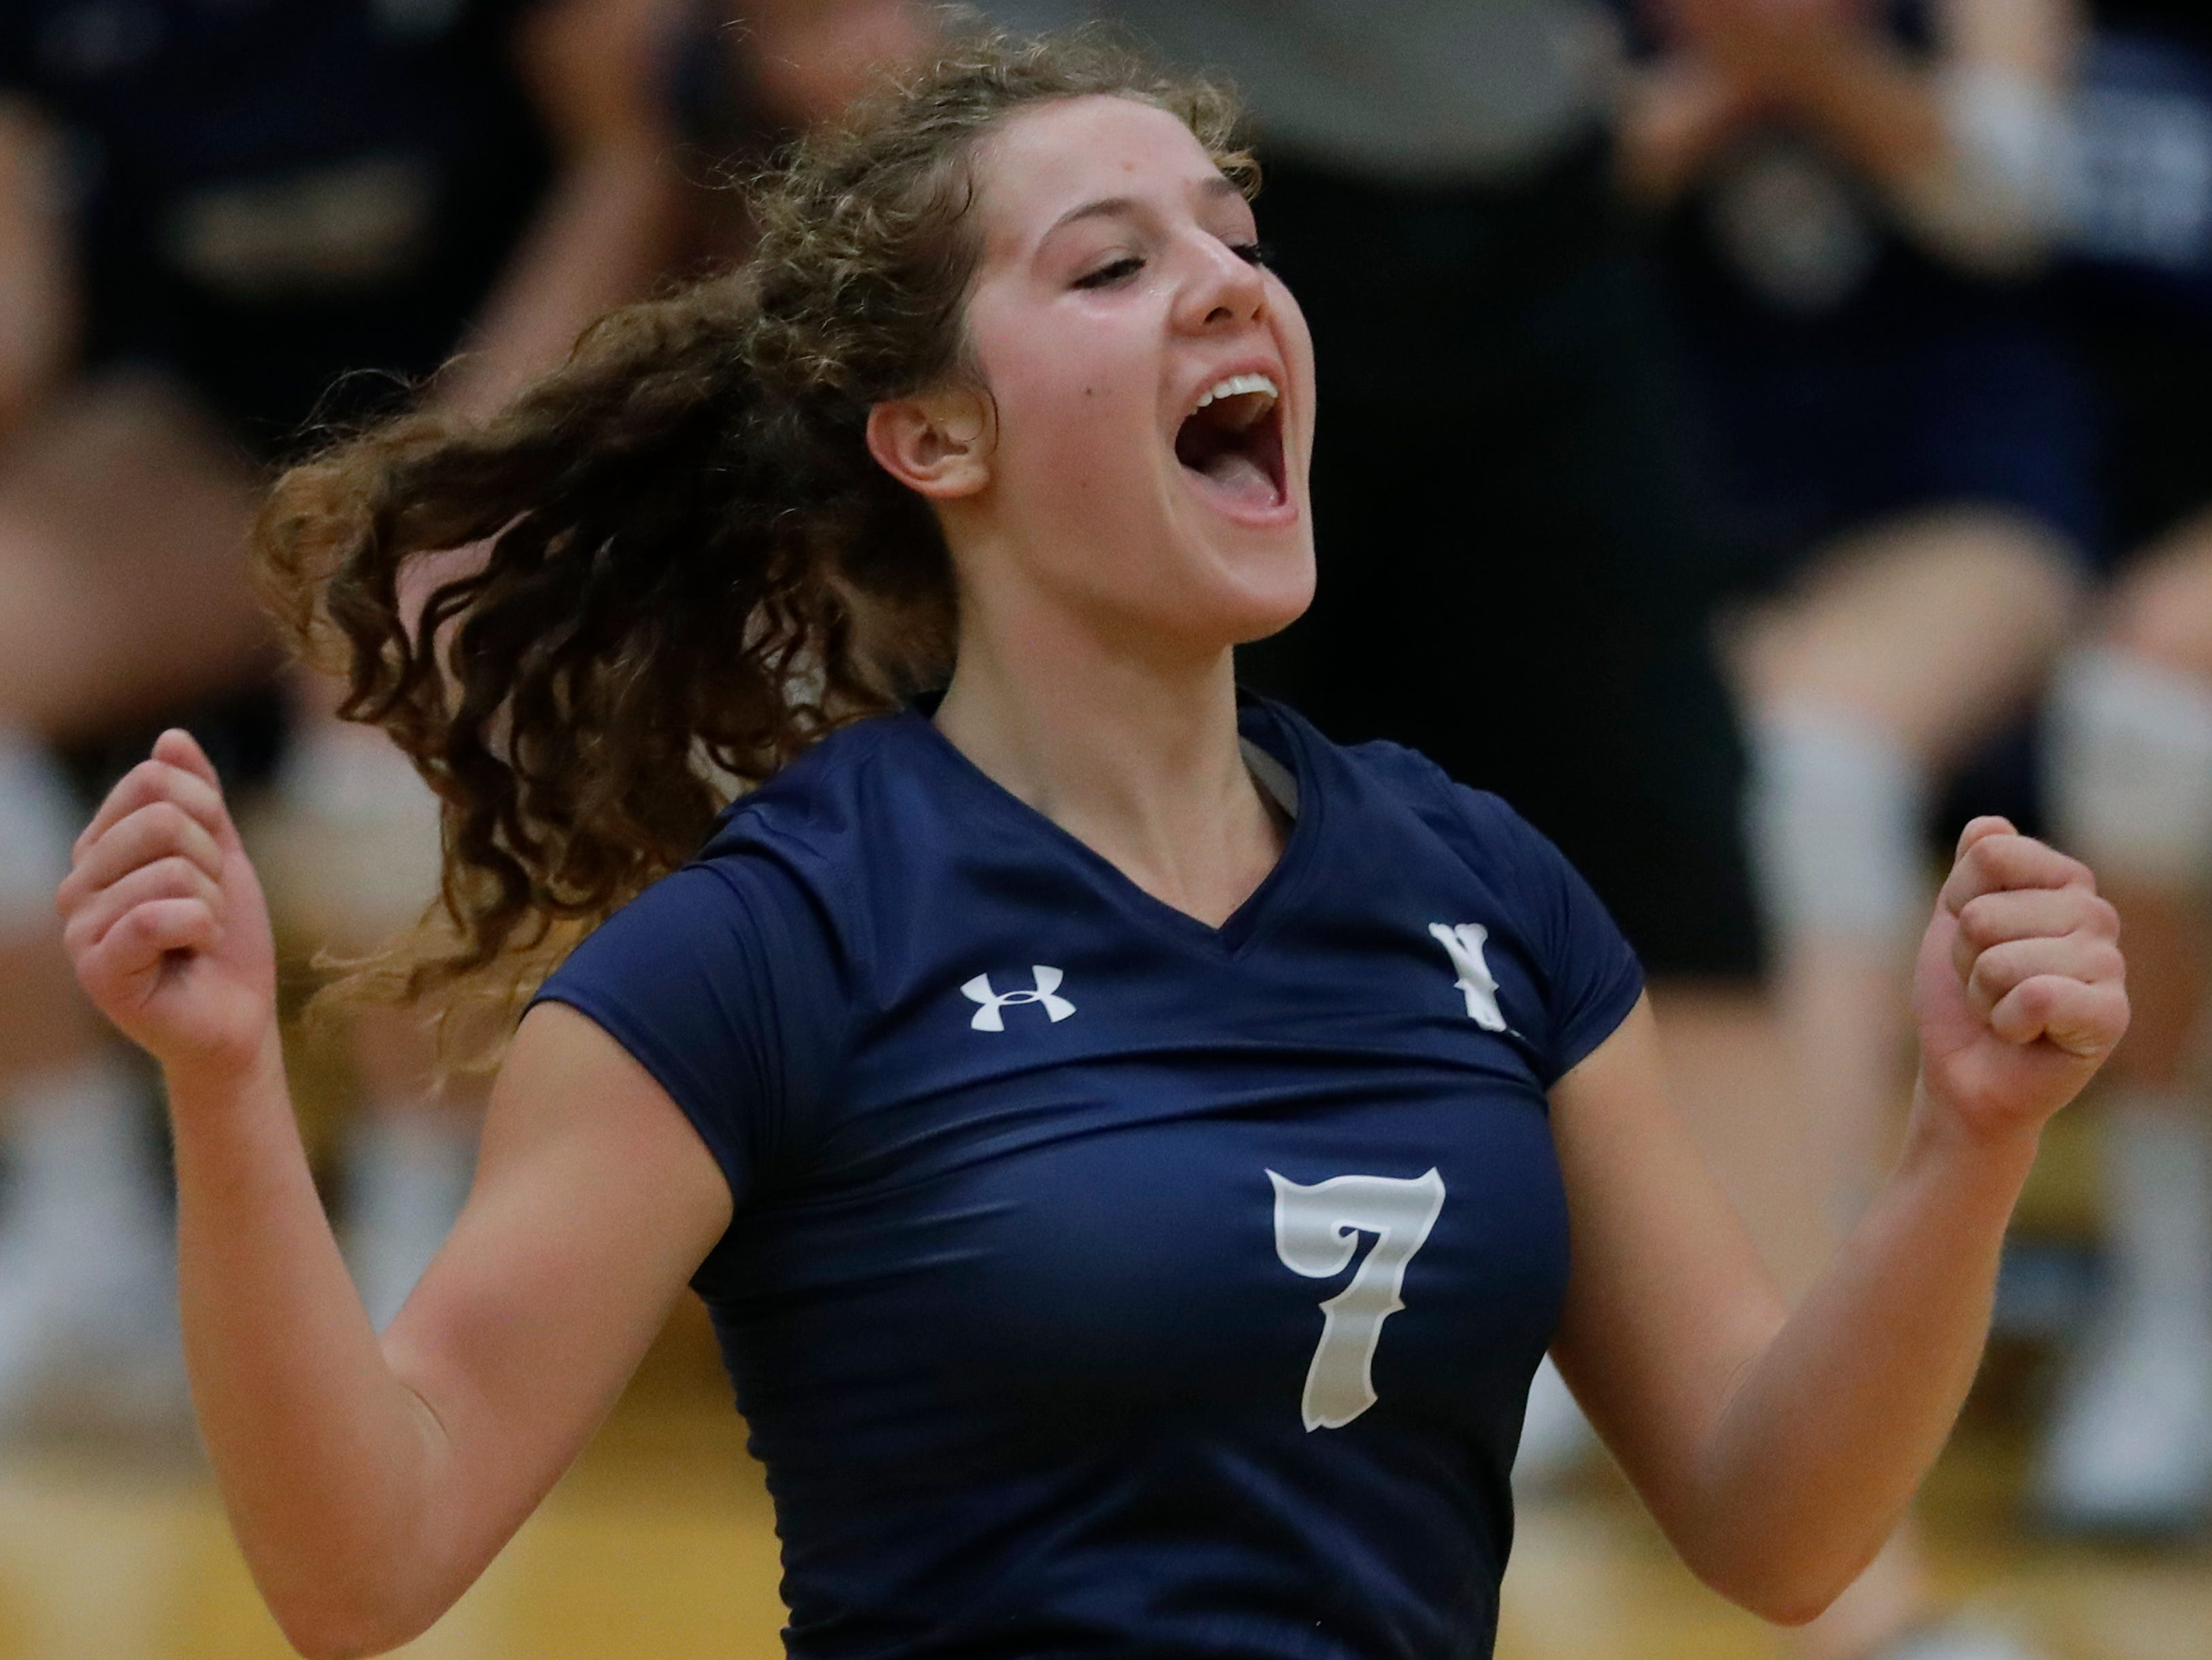 Xavier High School's Anna Hoerning (7) celebrates a point against New London High School during their girls volleyball match Thursday, Sept. 13, 2018, in Appleton, Wis. 